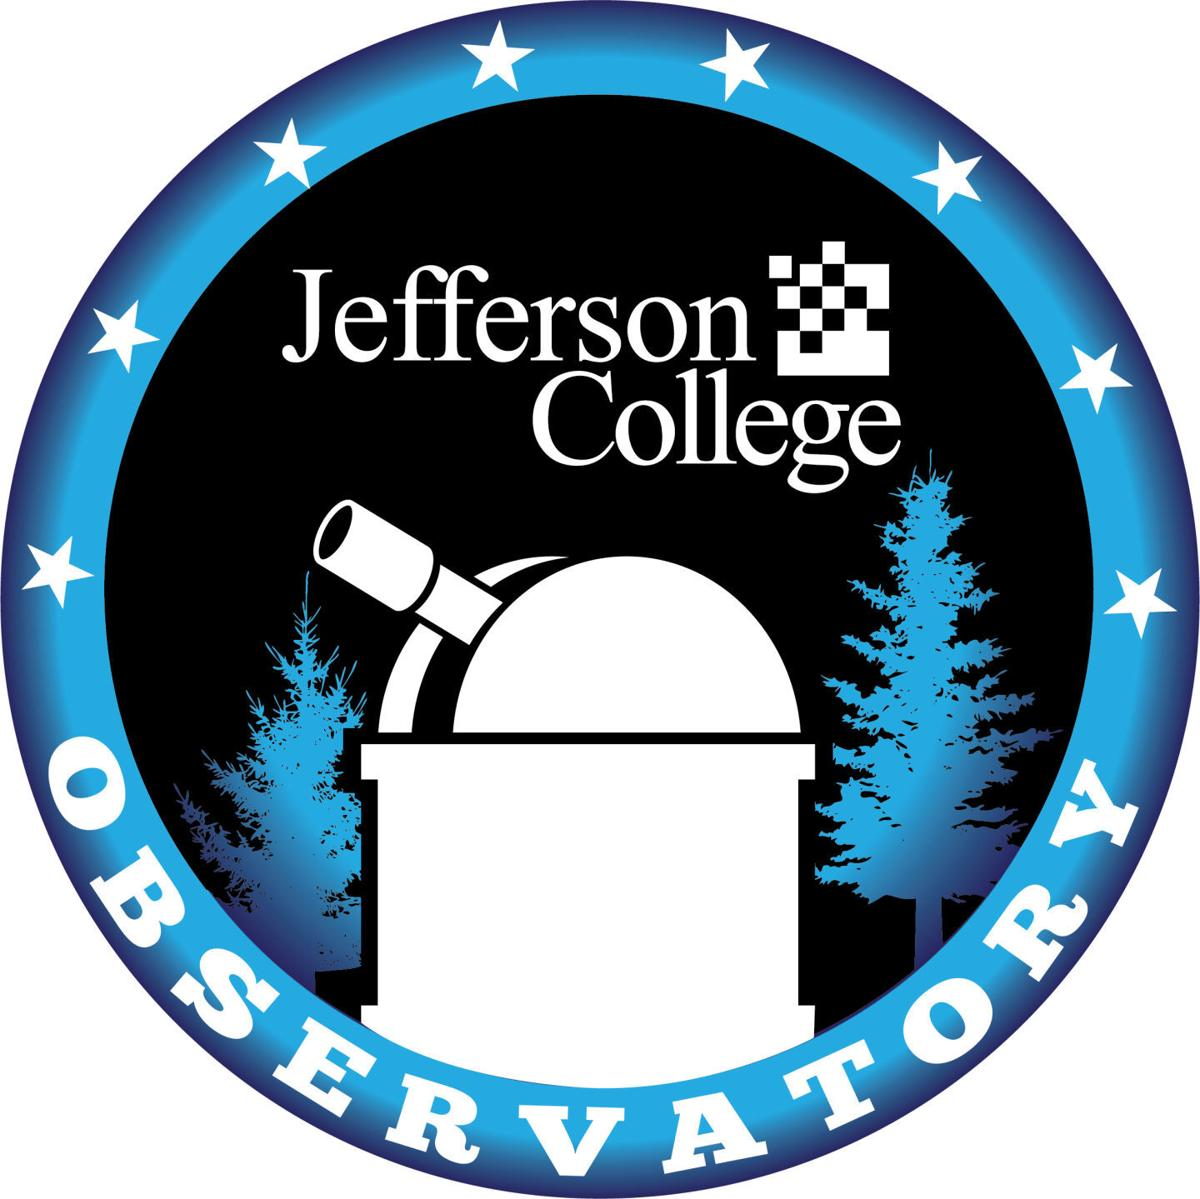 Jefferson College plans to 'Aim for the Stars'